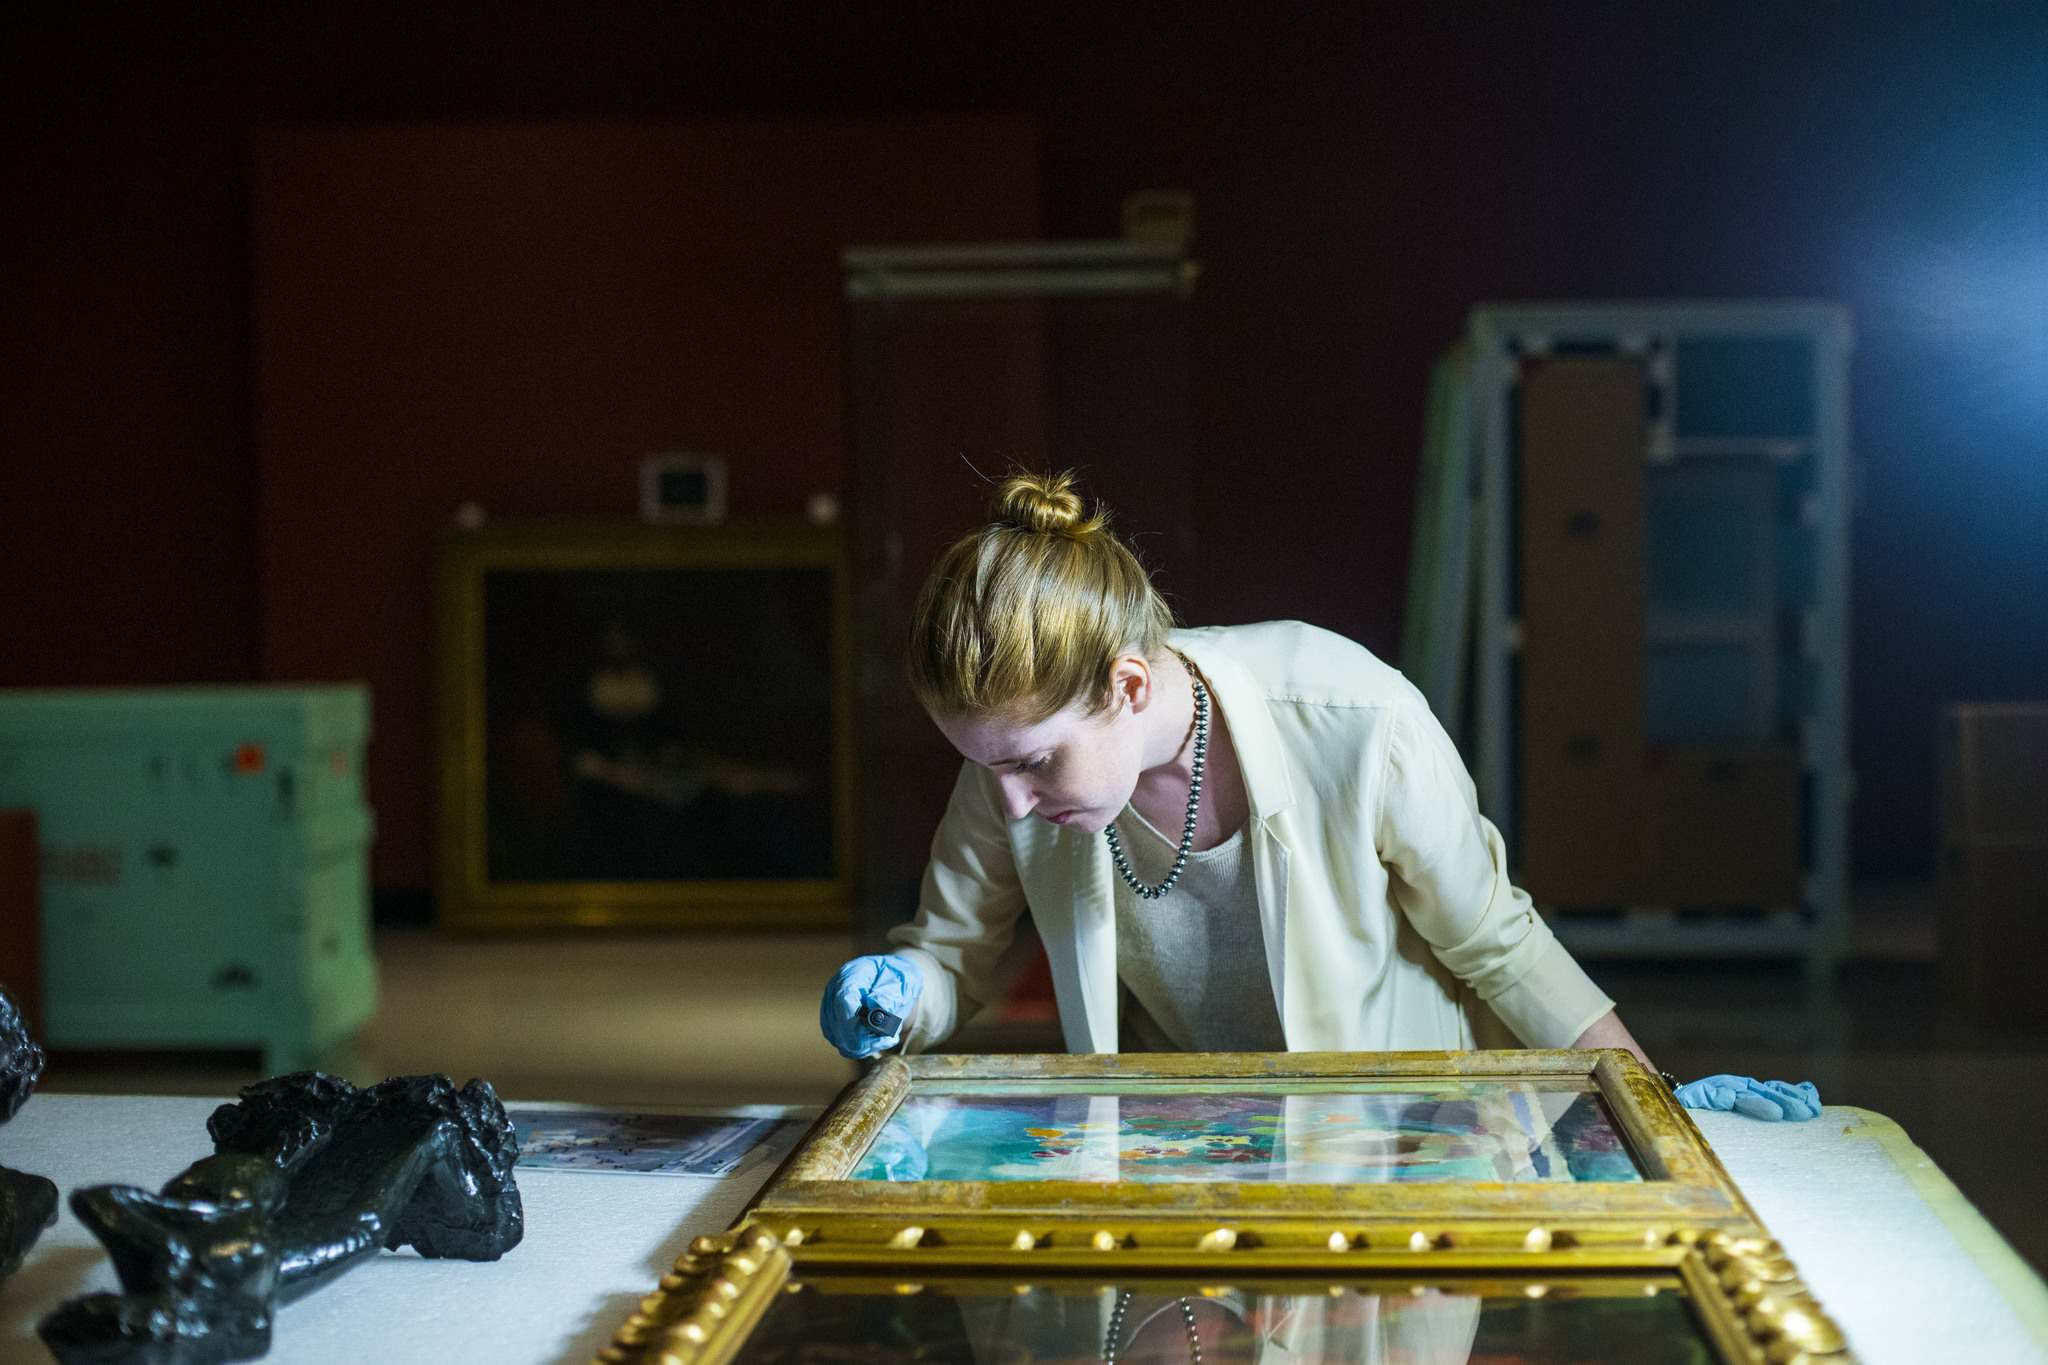 <p>Conservator Erin Anderson inspects paintings as they are uncrated at the gallery.</p>